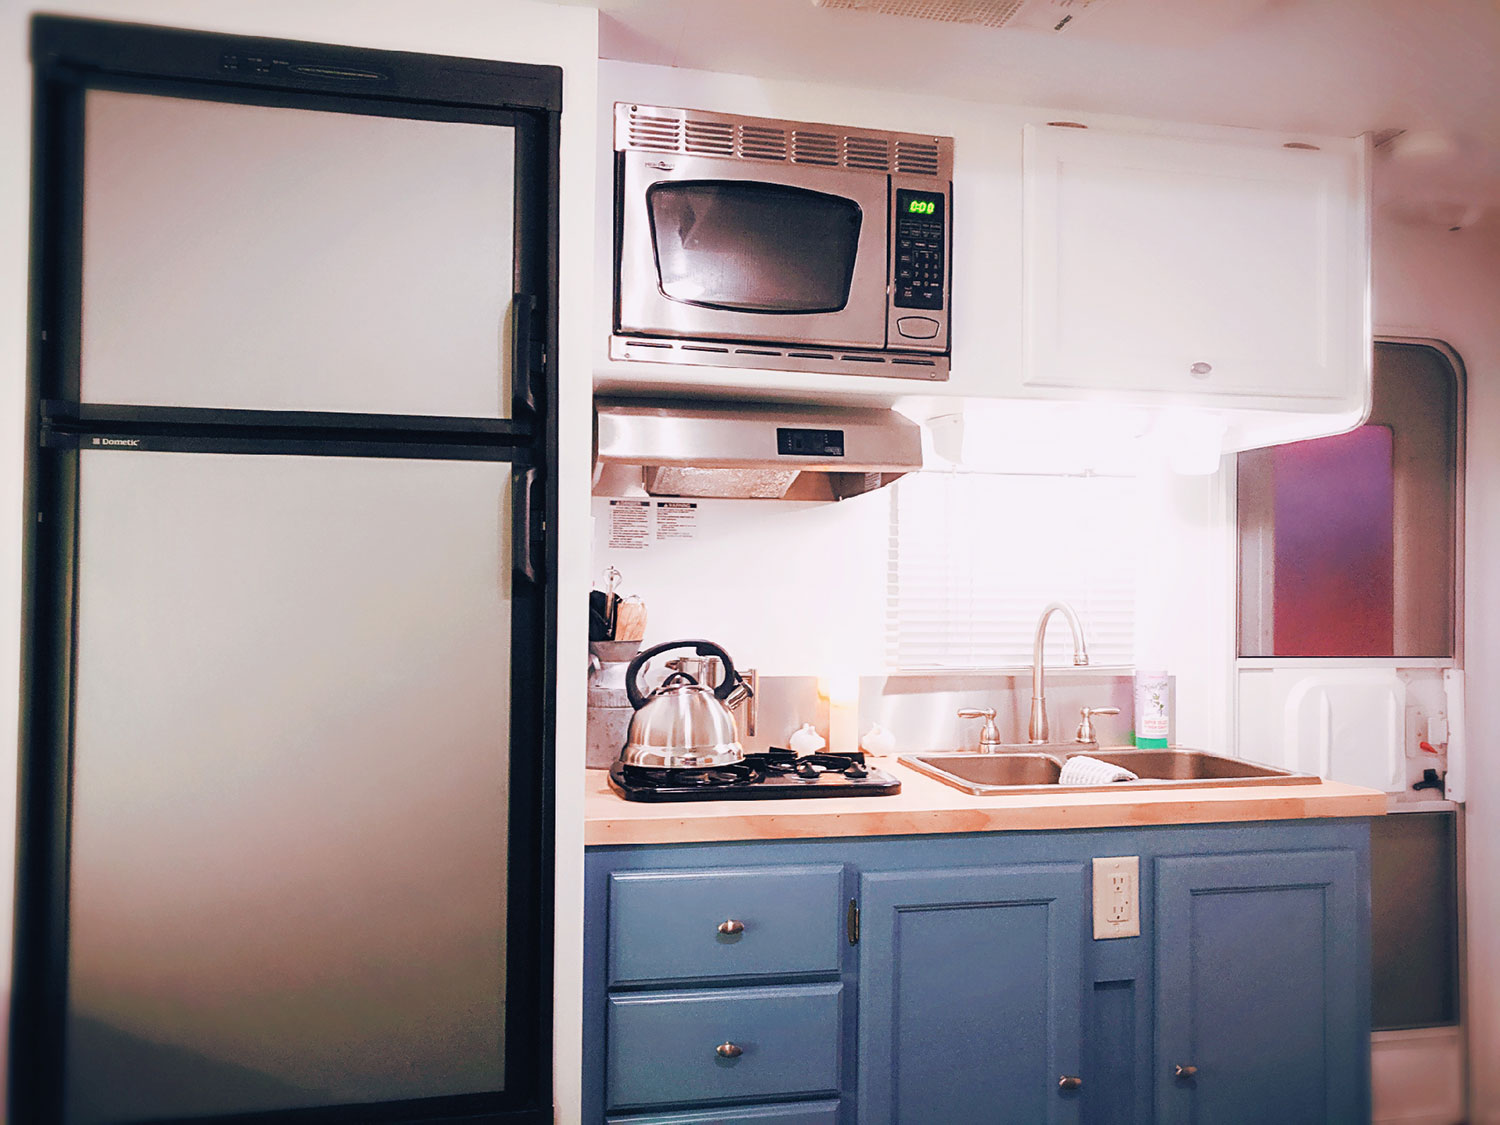 The galley kitchen includes a refrigerator and freezer, a microwave, a stove top with range hood, and a double sink.